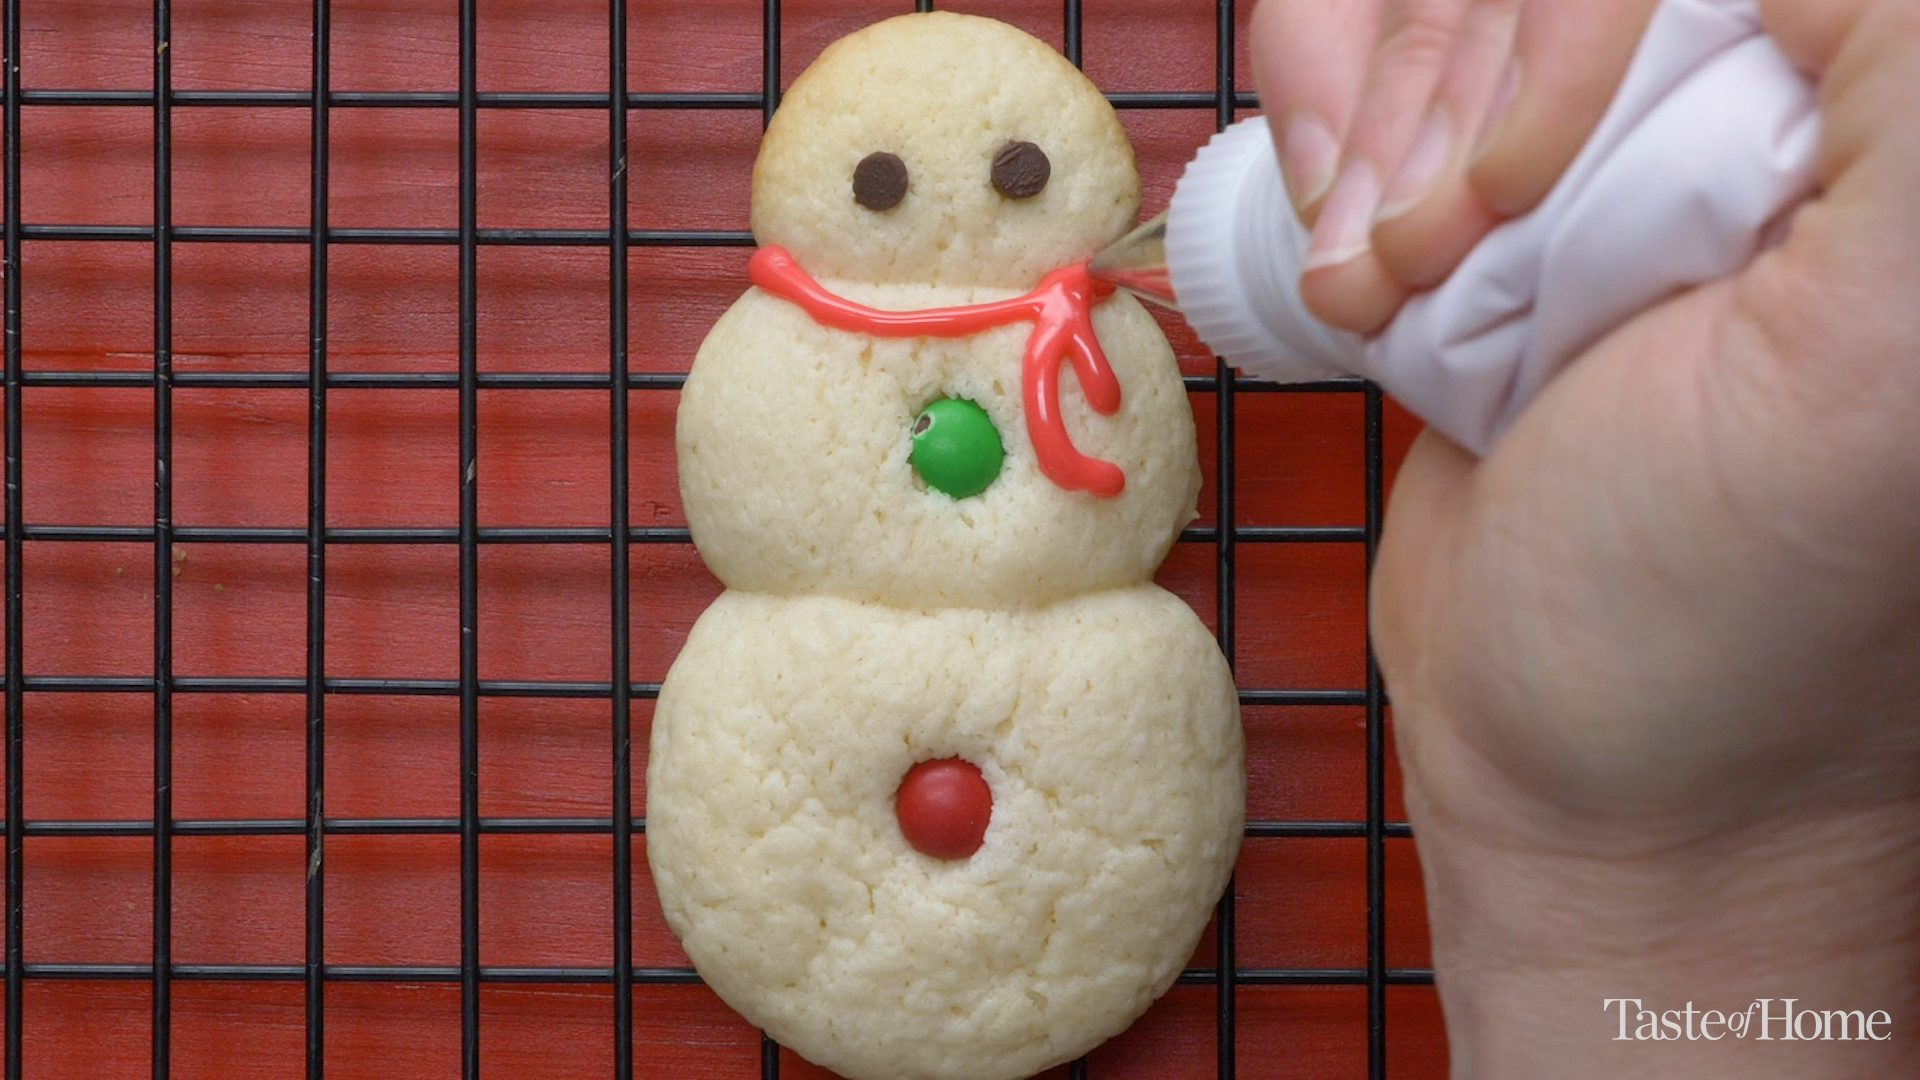 These Cute Little Snowman Cookies Will Make Your Heart Melt